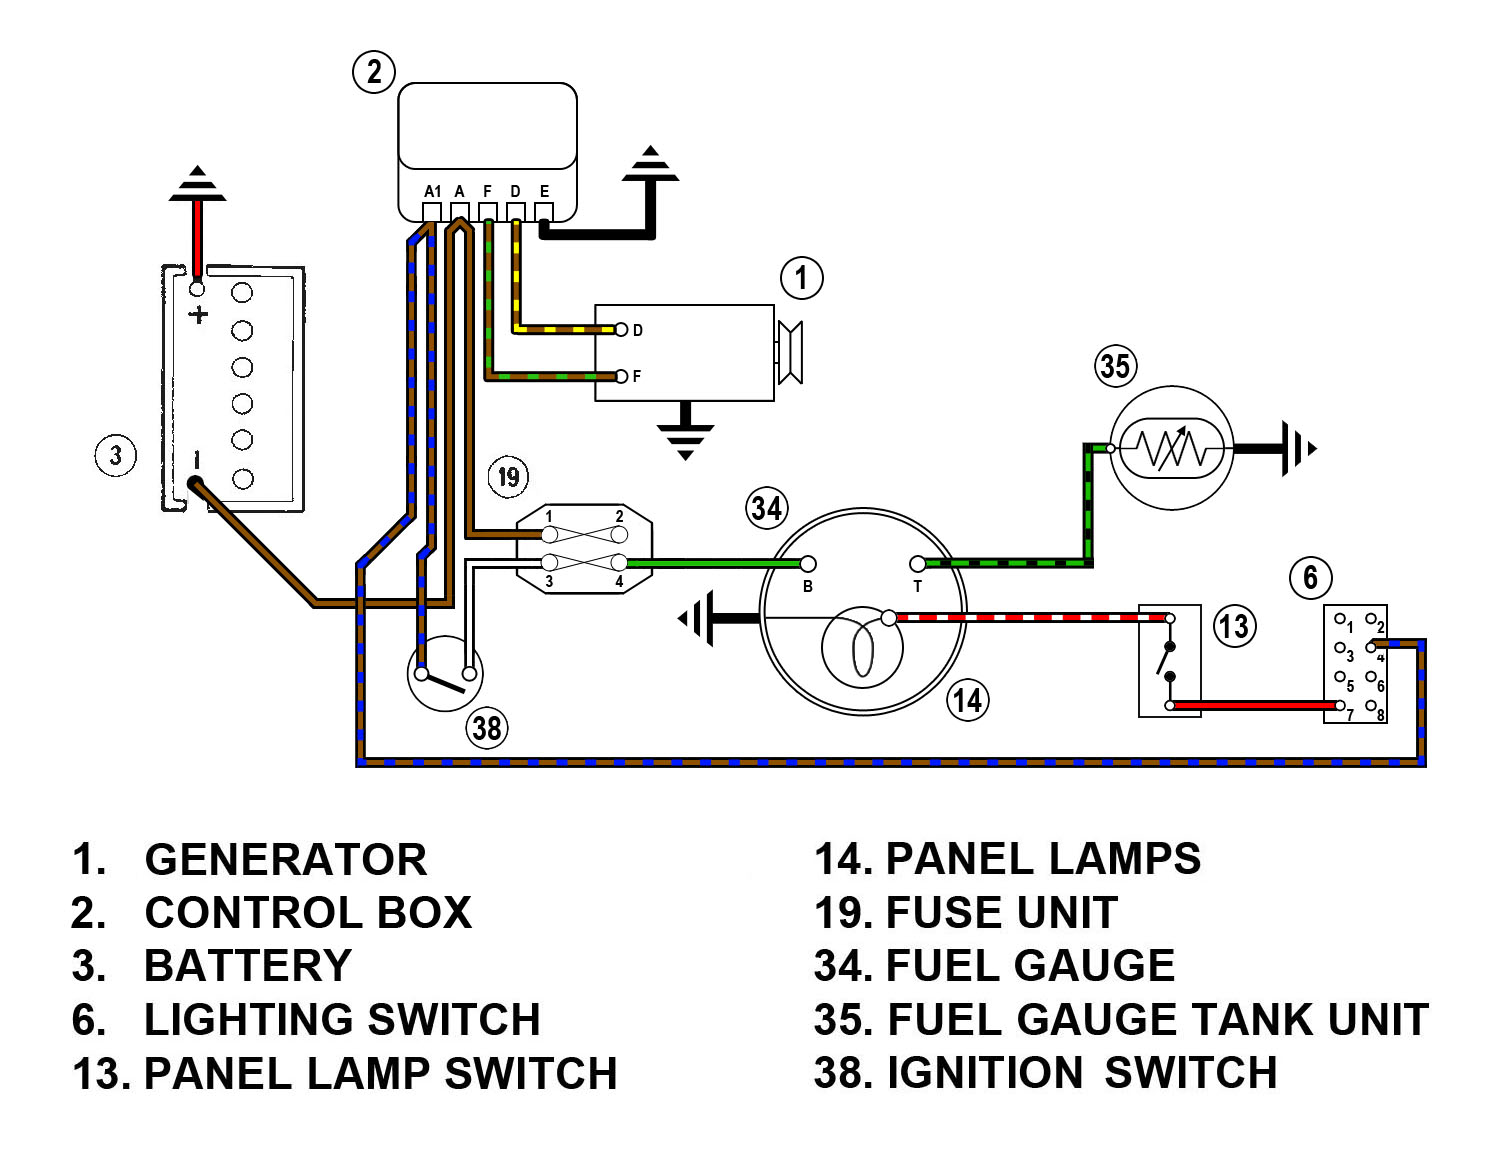 hight resolution of teleflex fuel gauge wiring diagram schematic wiring diagram todaysfuel gauge wiring diagram wiring library marine gas